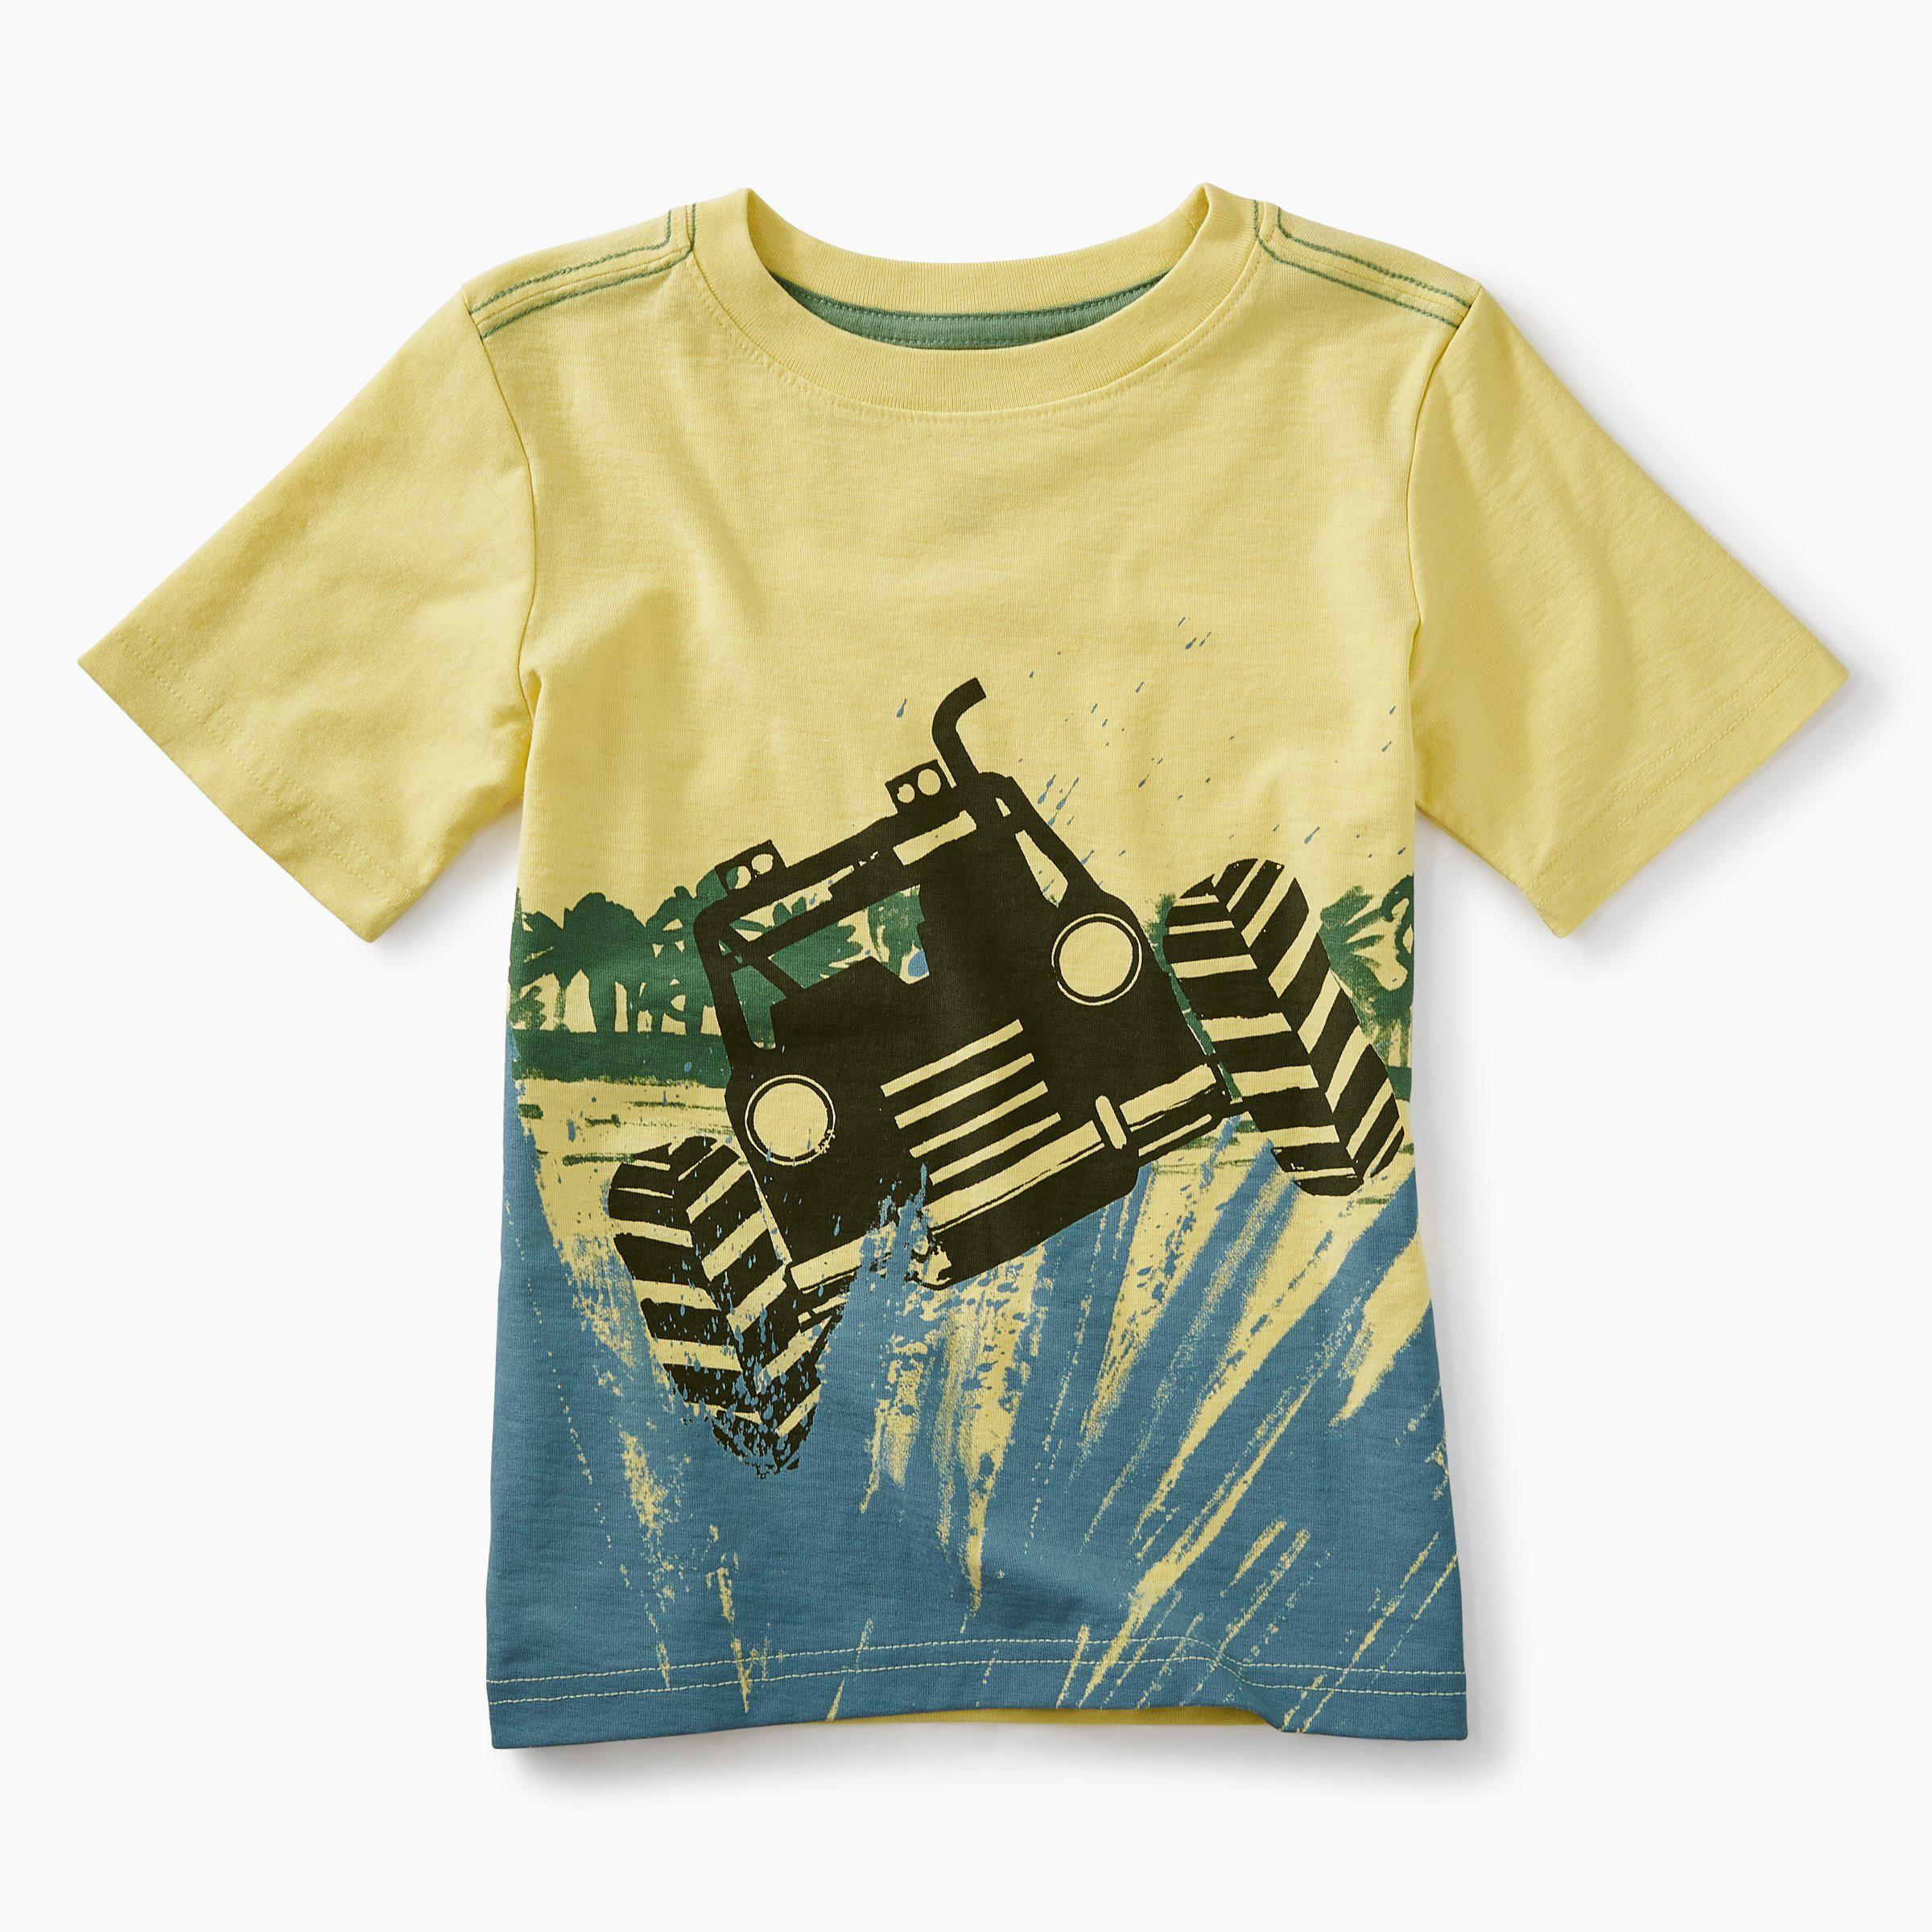 4cd07c4f7 Off Road Graphic Tee - Shirts